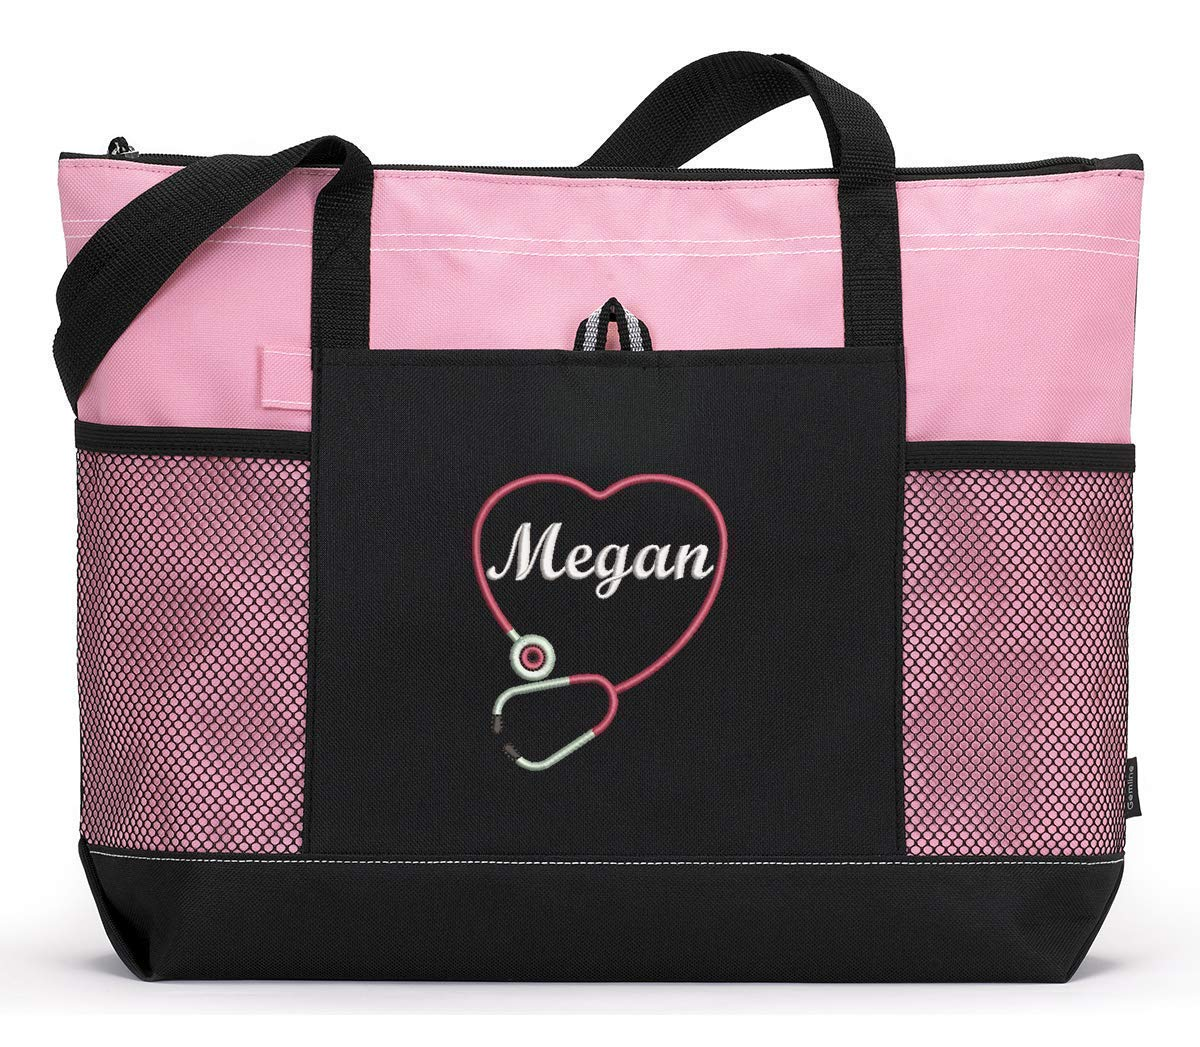 B01FNEH686 Personalized Nurse, CNA, RN, LPN Embroidered Tote Bag with Mesh Pockets 71jCbg02B93L